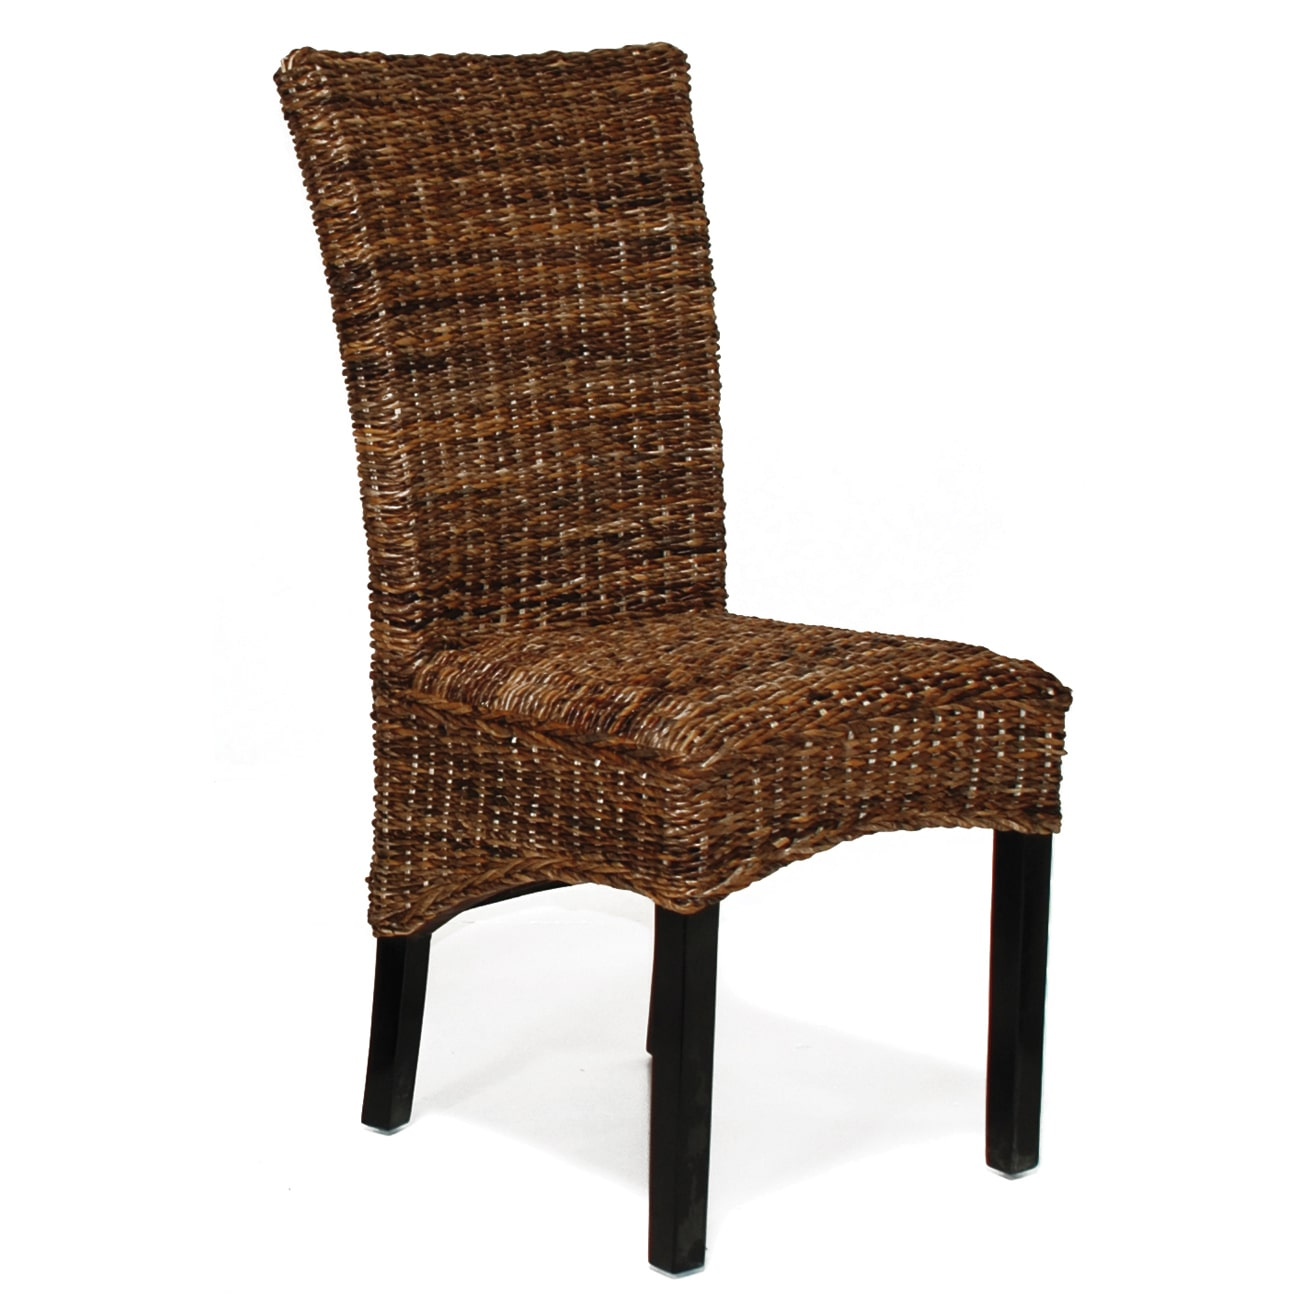 Kosas Home Ira Rattan Dining Chair by